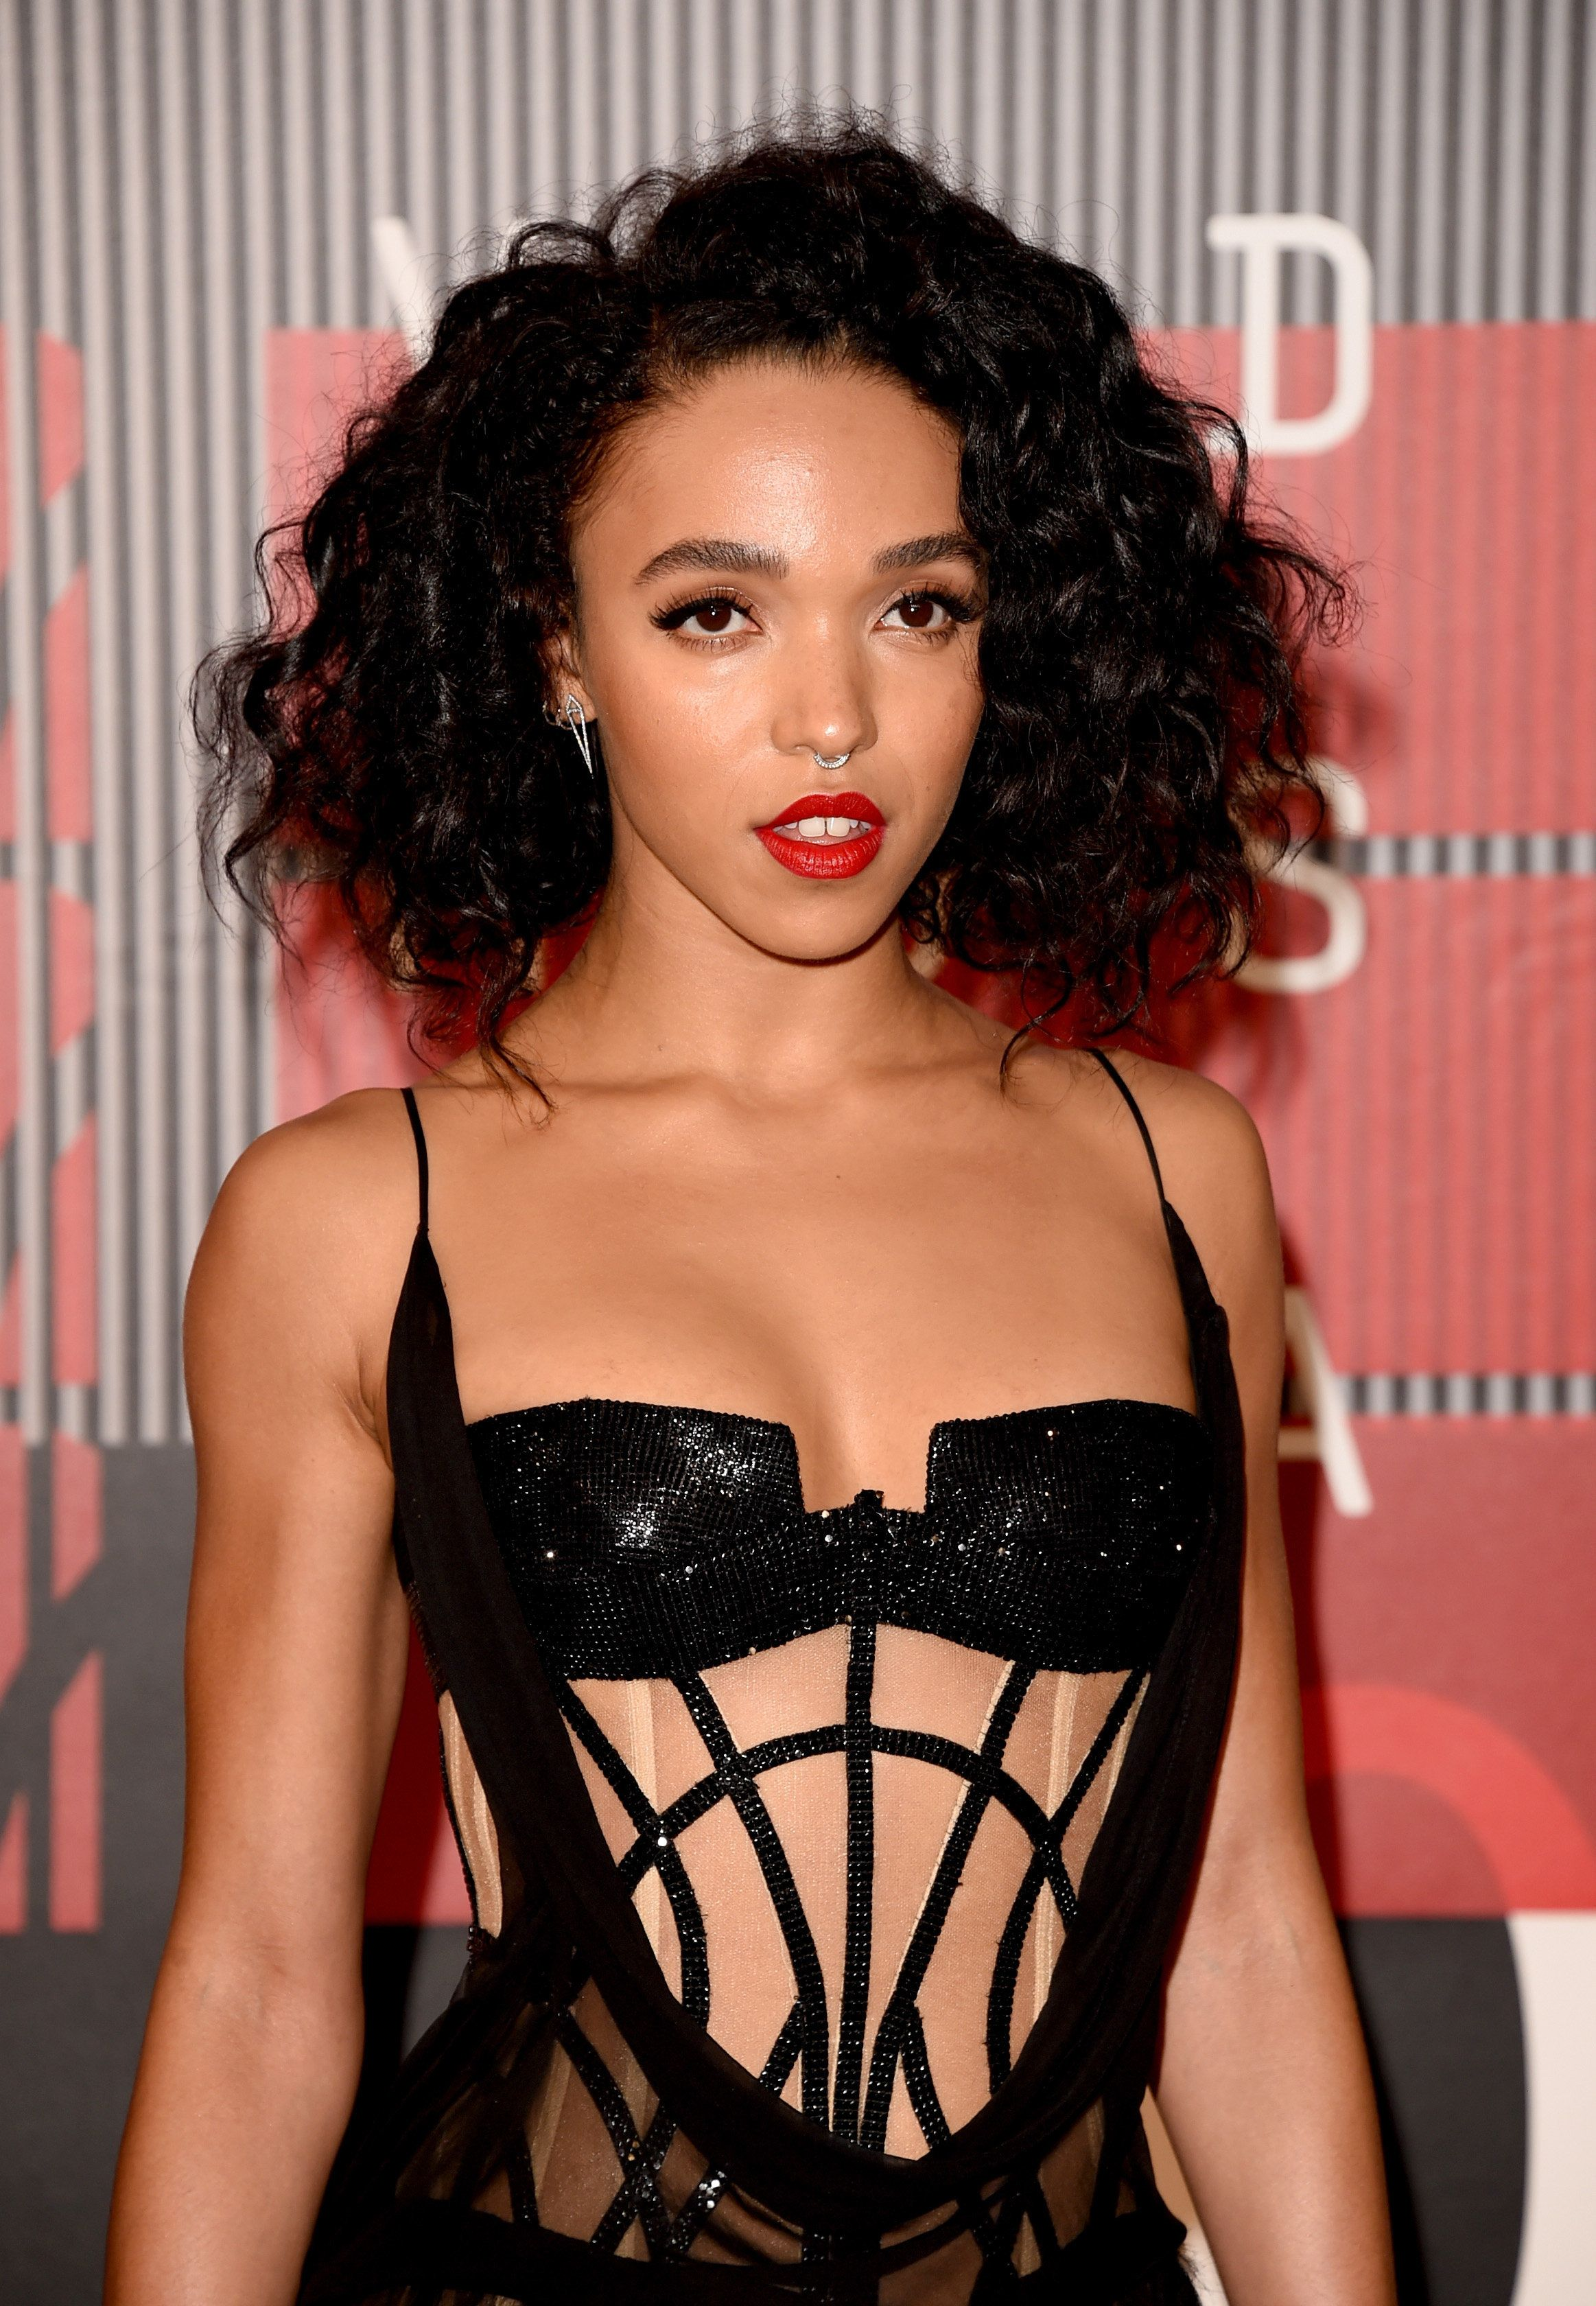 LOS ANGELES, CA - AUGUST 30:  Recording artist FKA twigs attends the 2015 MTV Video Music Awards at Microsoft Theater on August 30, 2015 in Los Angeles, California.  (Photo by Jason Merritt/Getty Images)